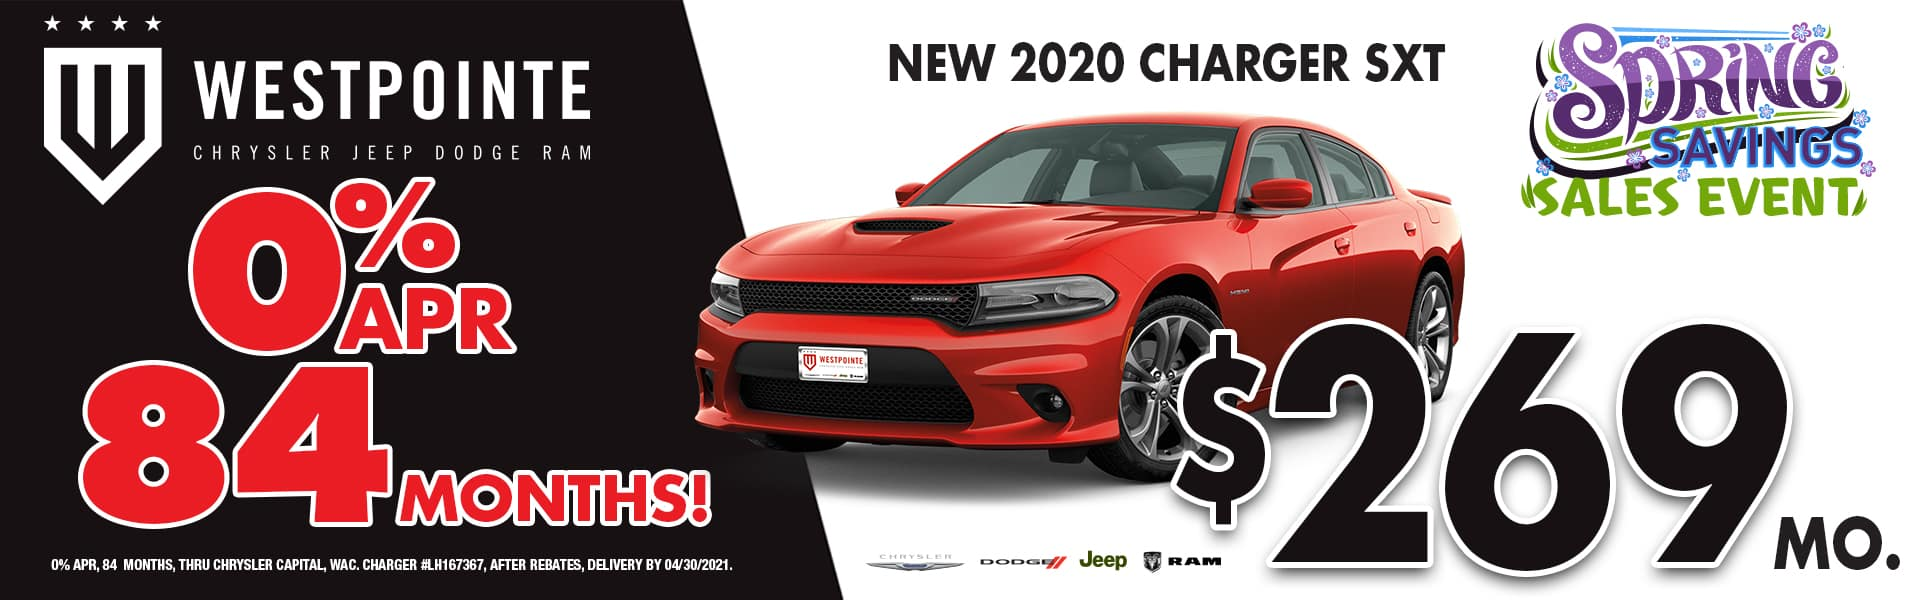 WP 04-08-21 Charger Homepage